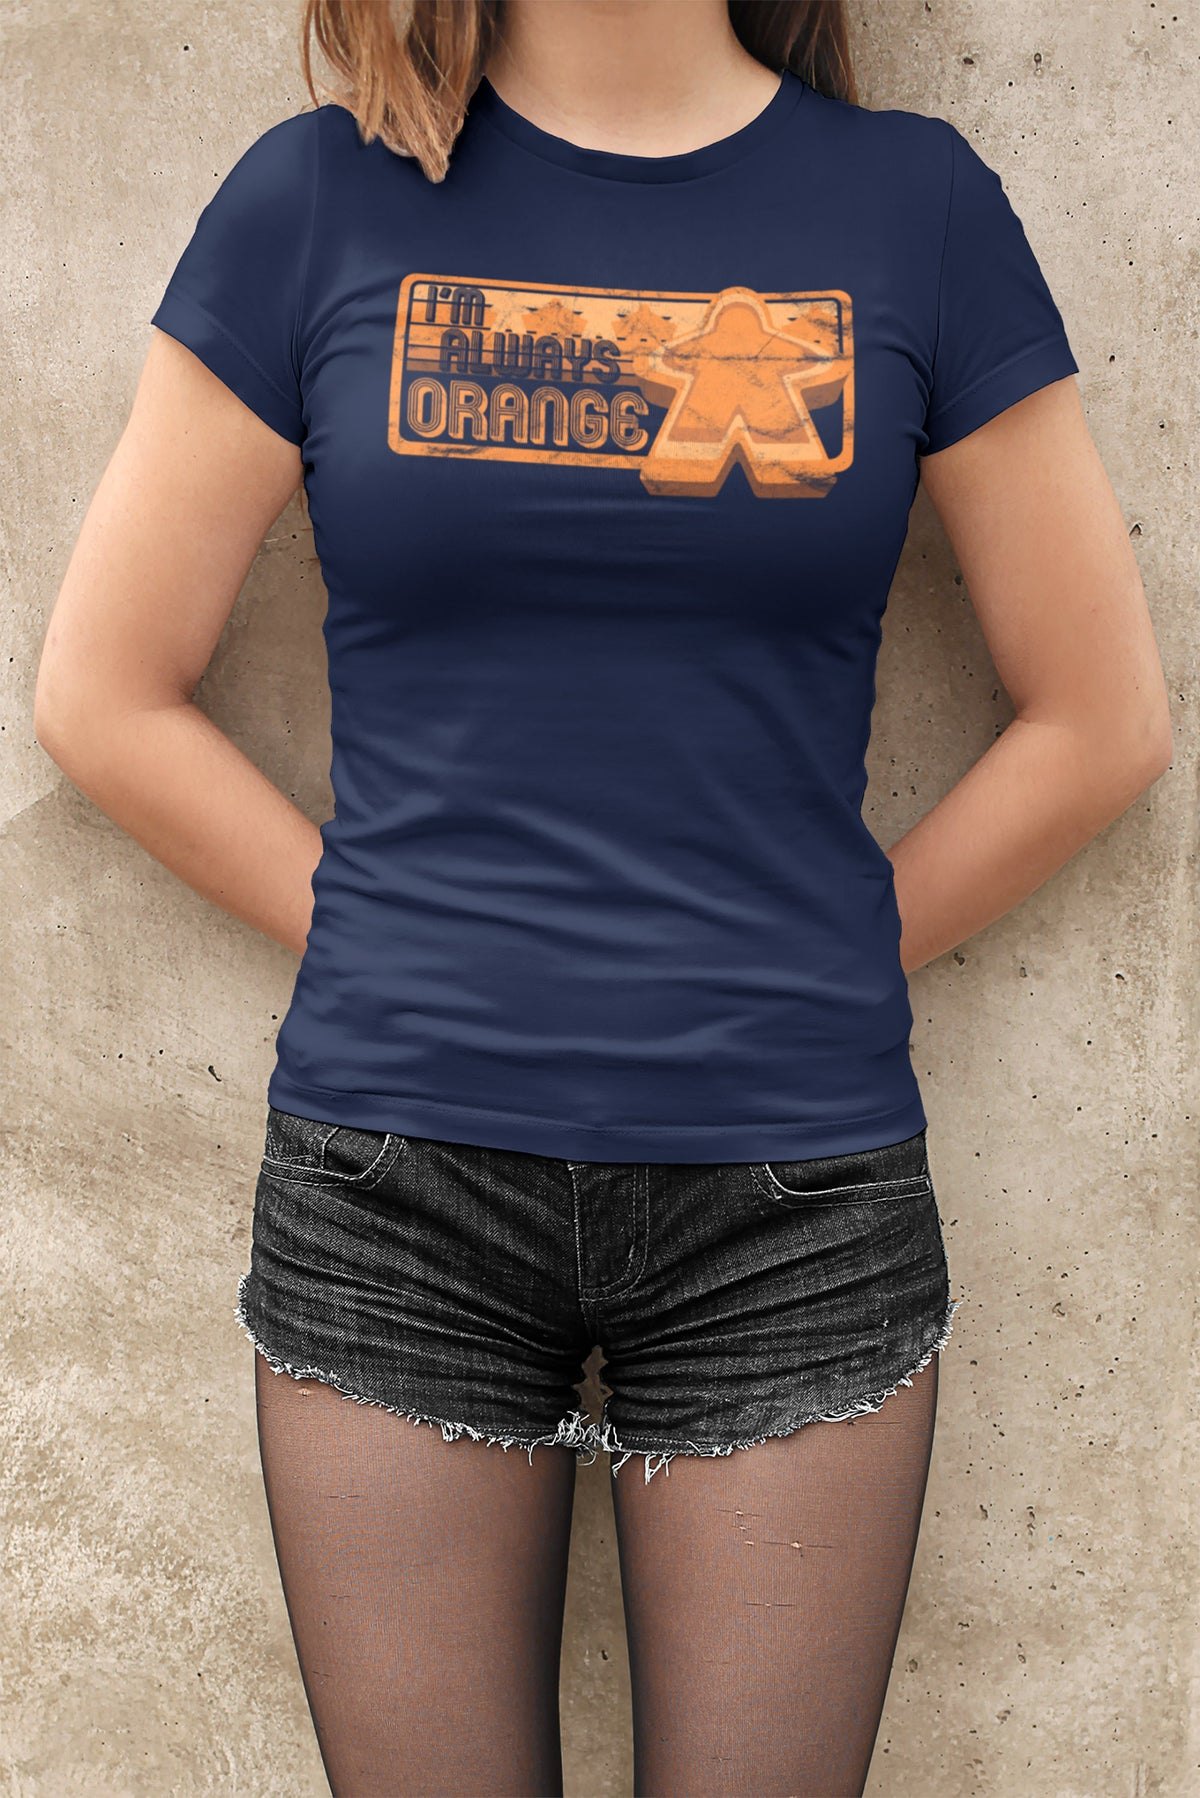 I'm Always Orange Meeple Board Game T-Shirt Action Shot Women's